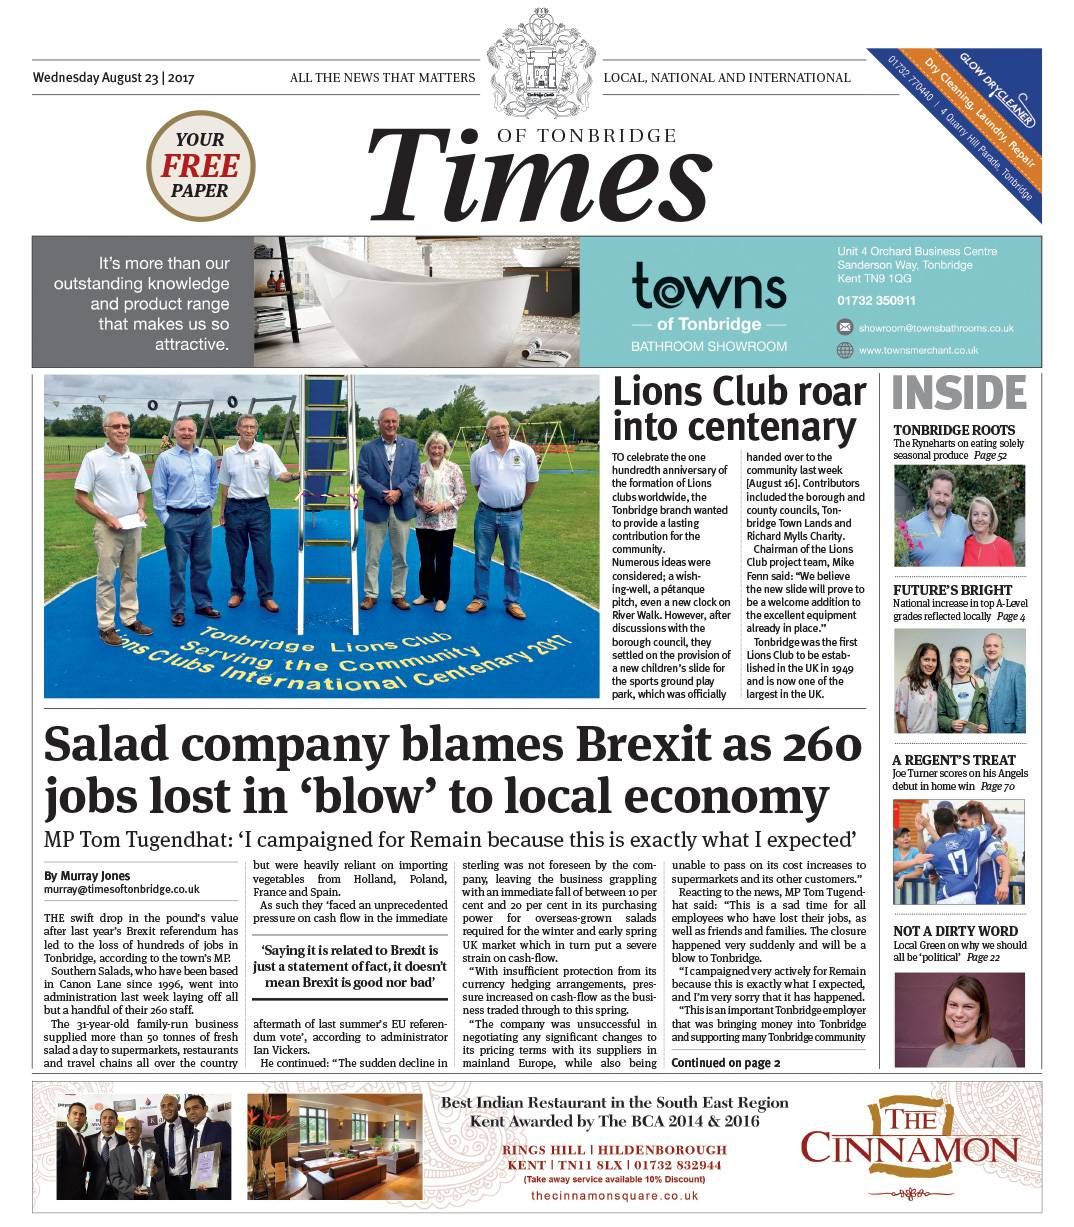 Read the Times of Tonbridge 23rd August 2017